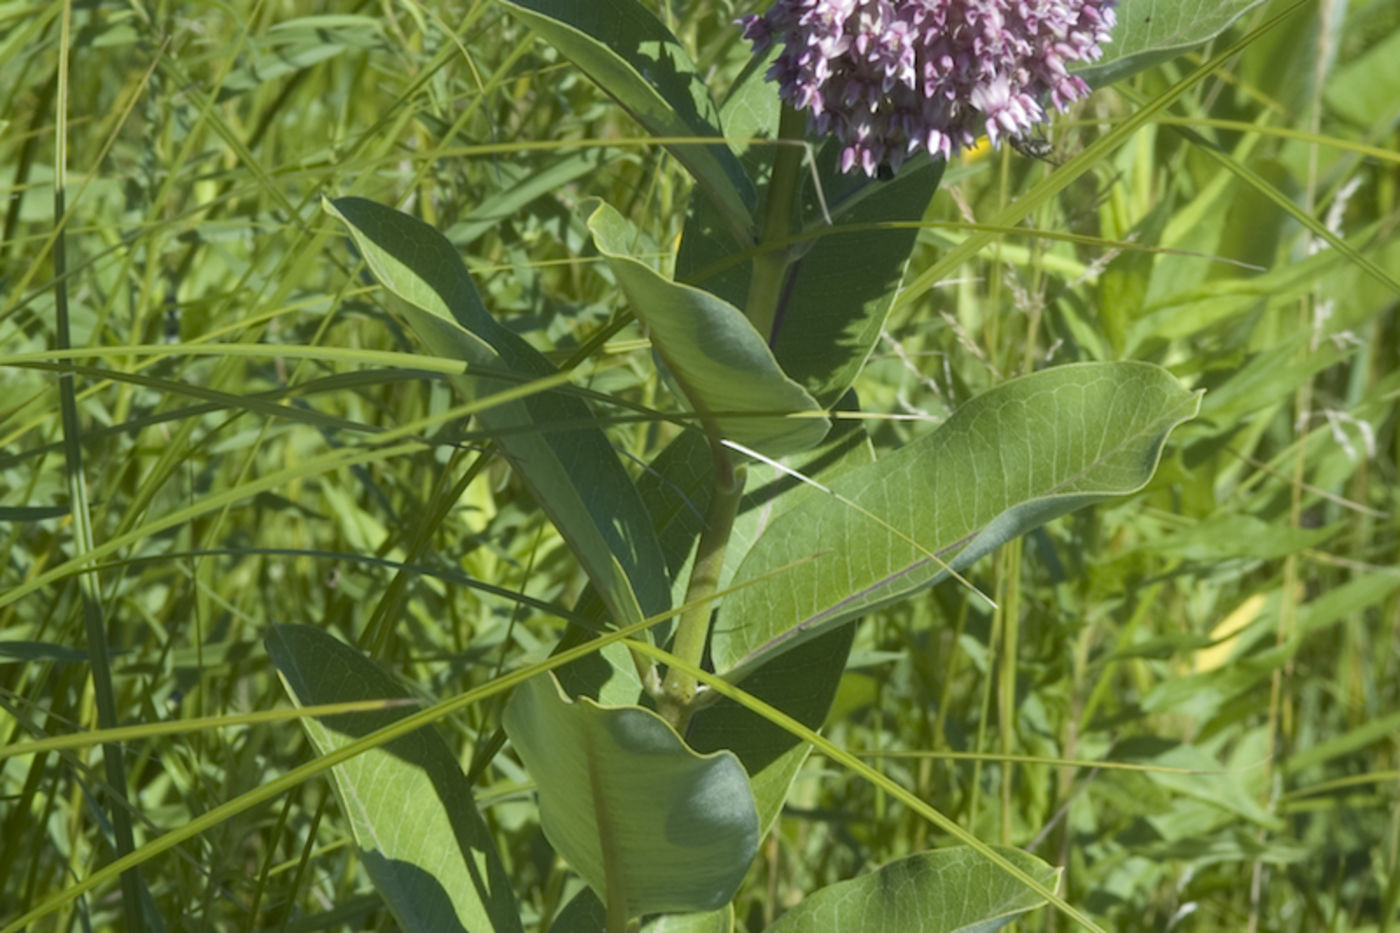 Tall plant stalk with large leaves all the way up the stem and a cluster of small pink flowers at the top